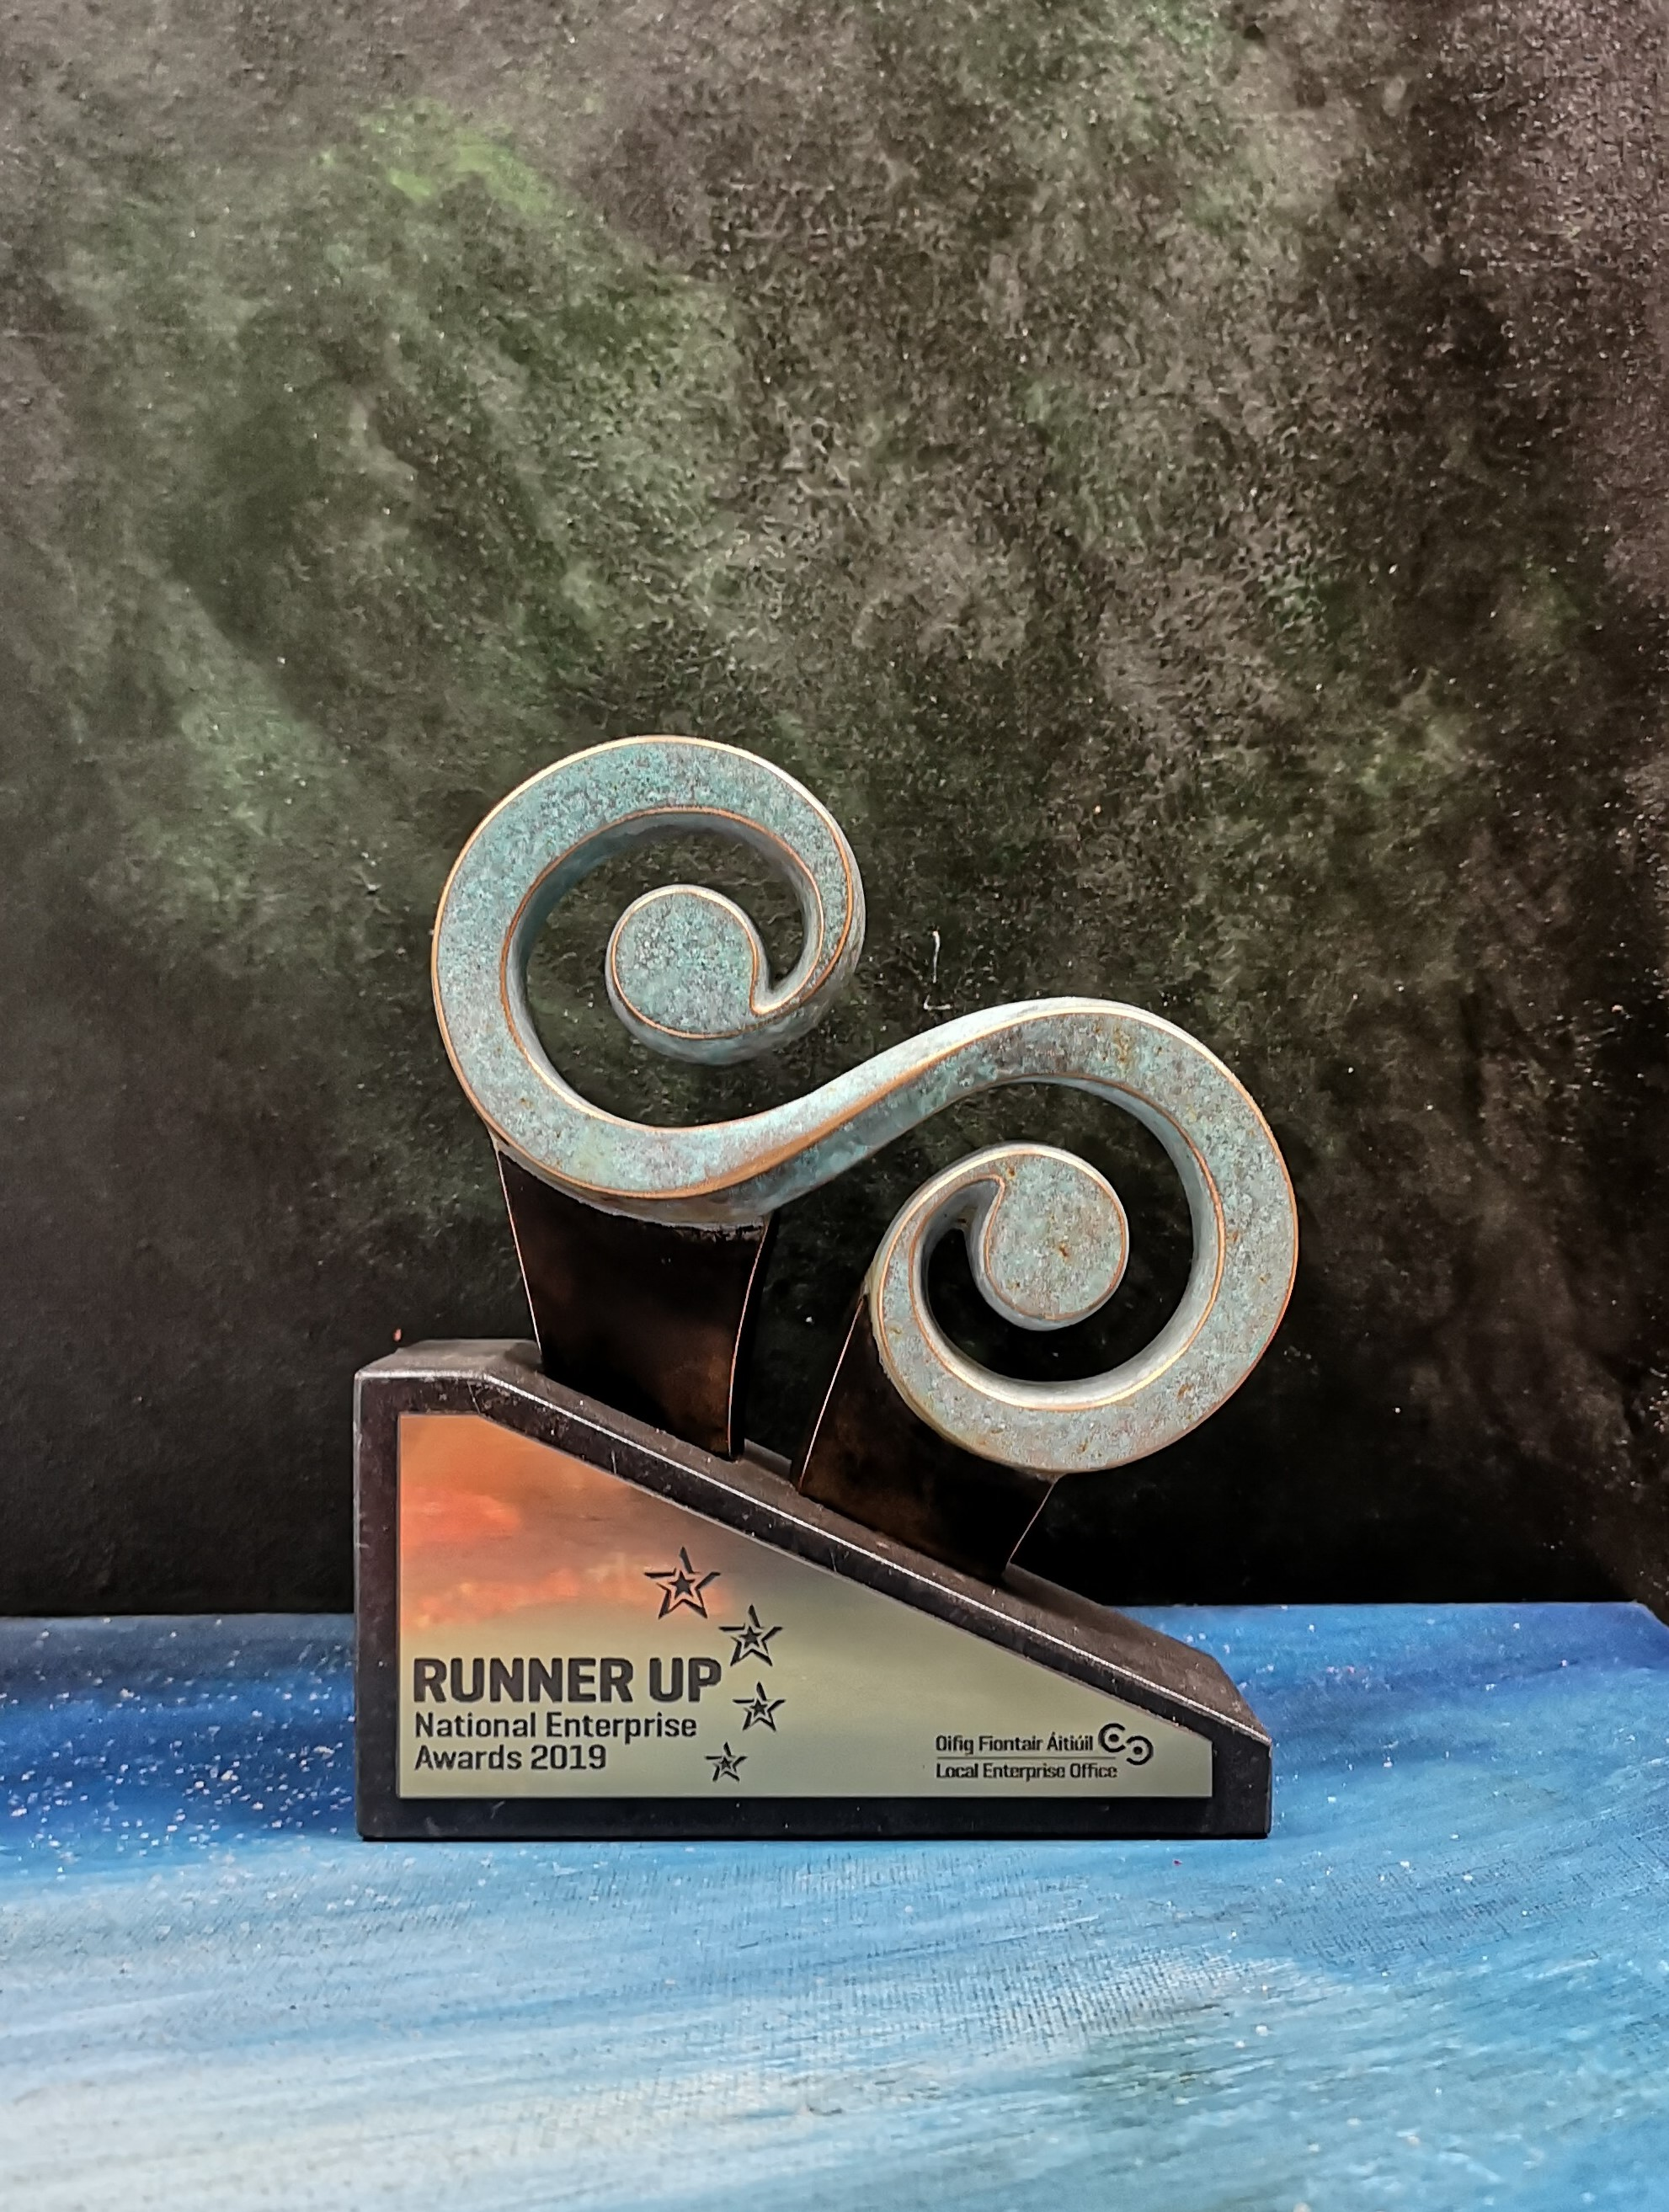 2019 National Enterprise Award Runner Up